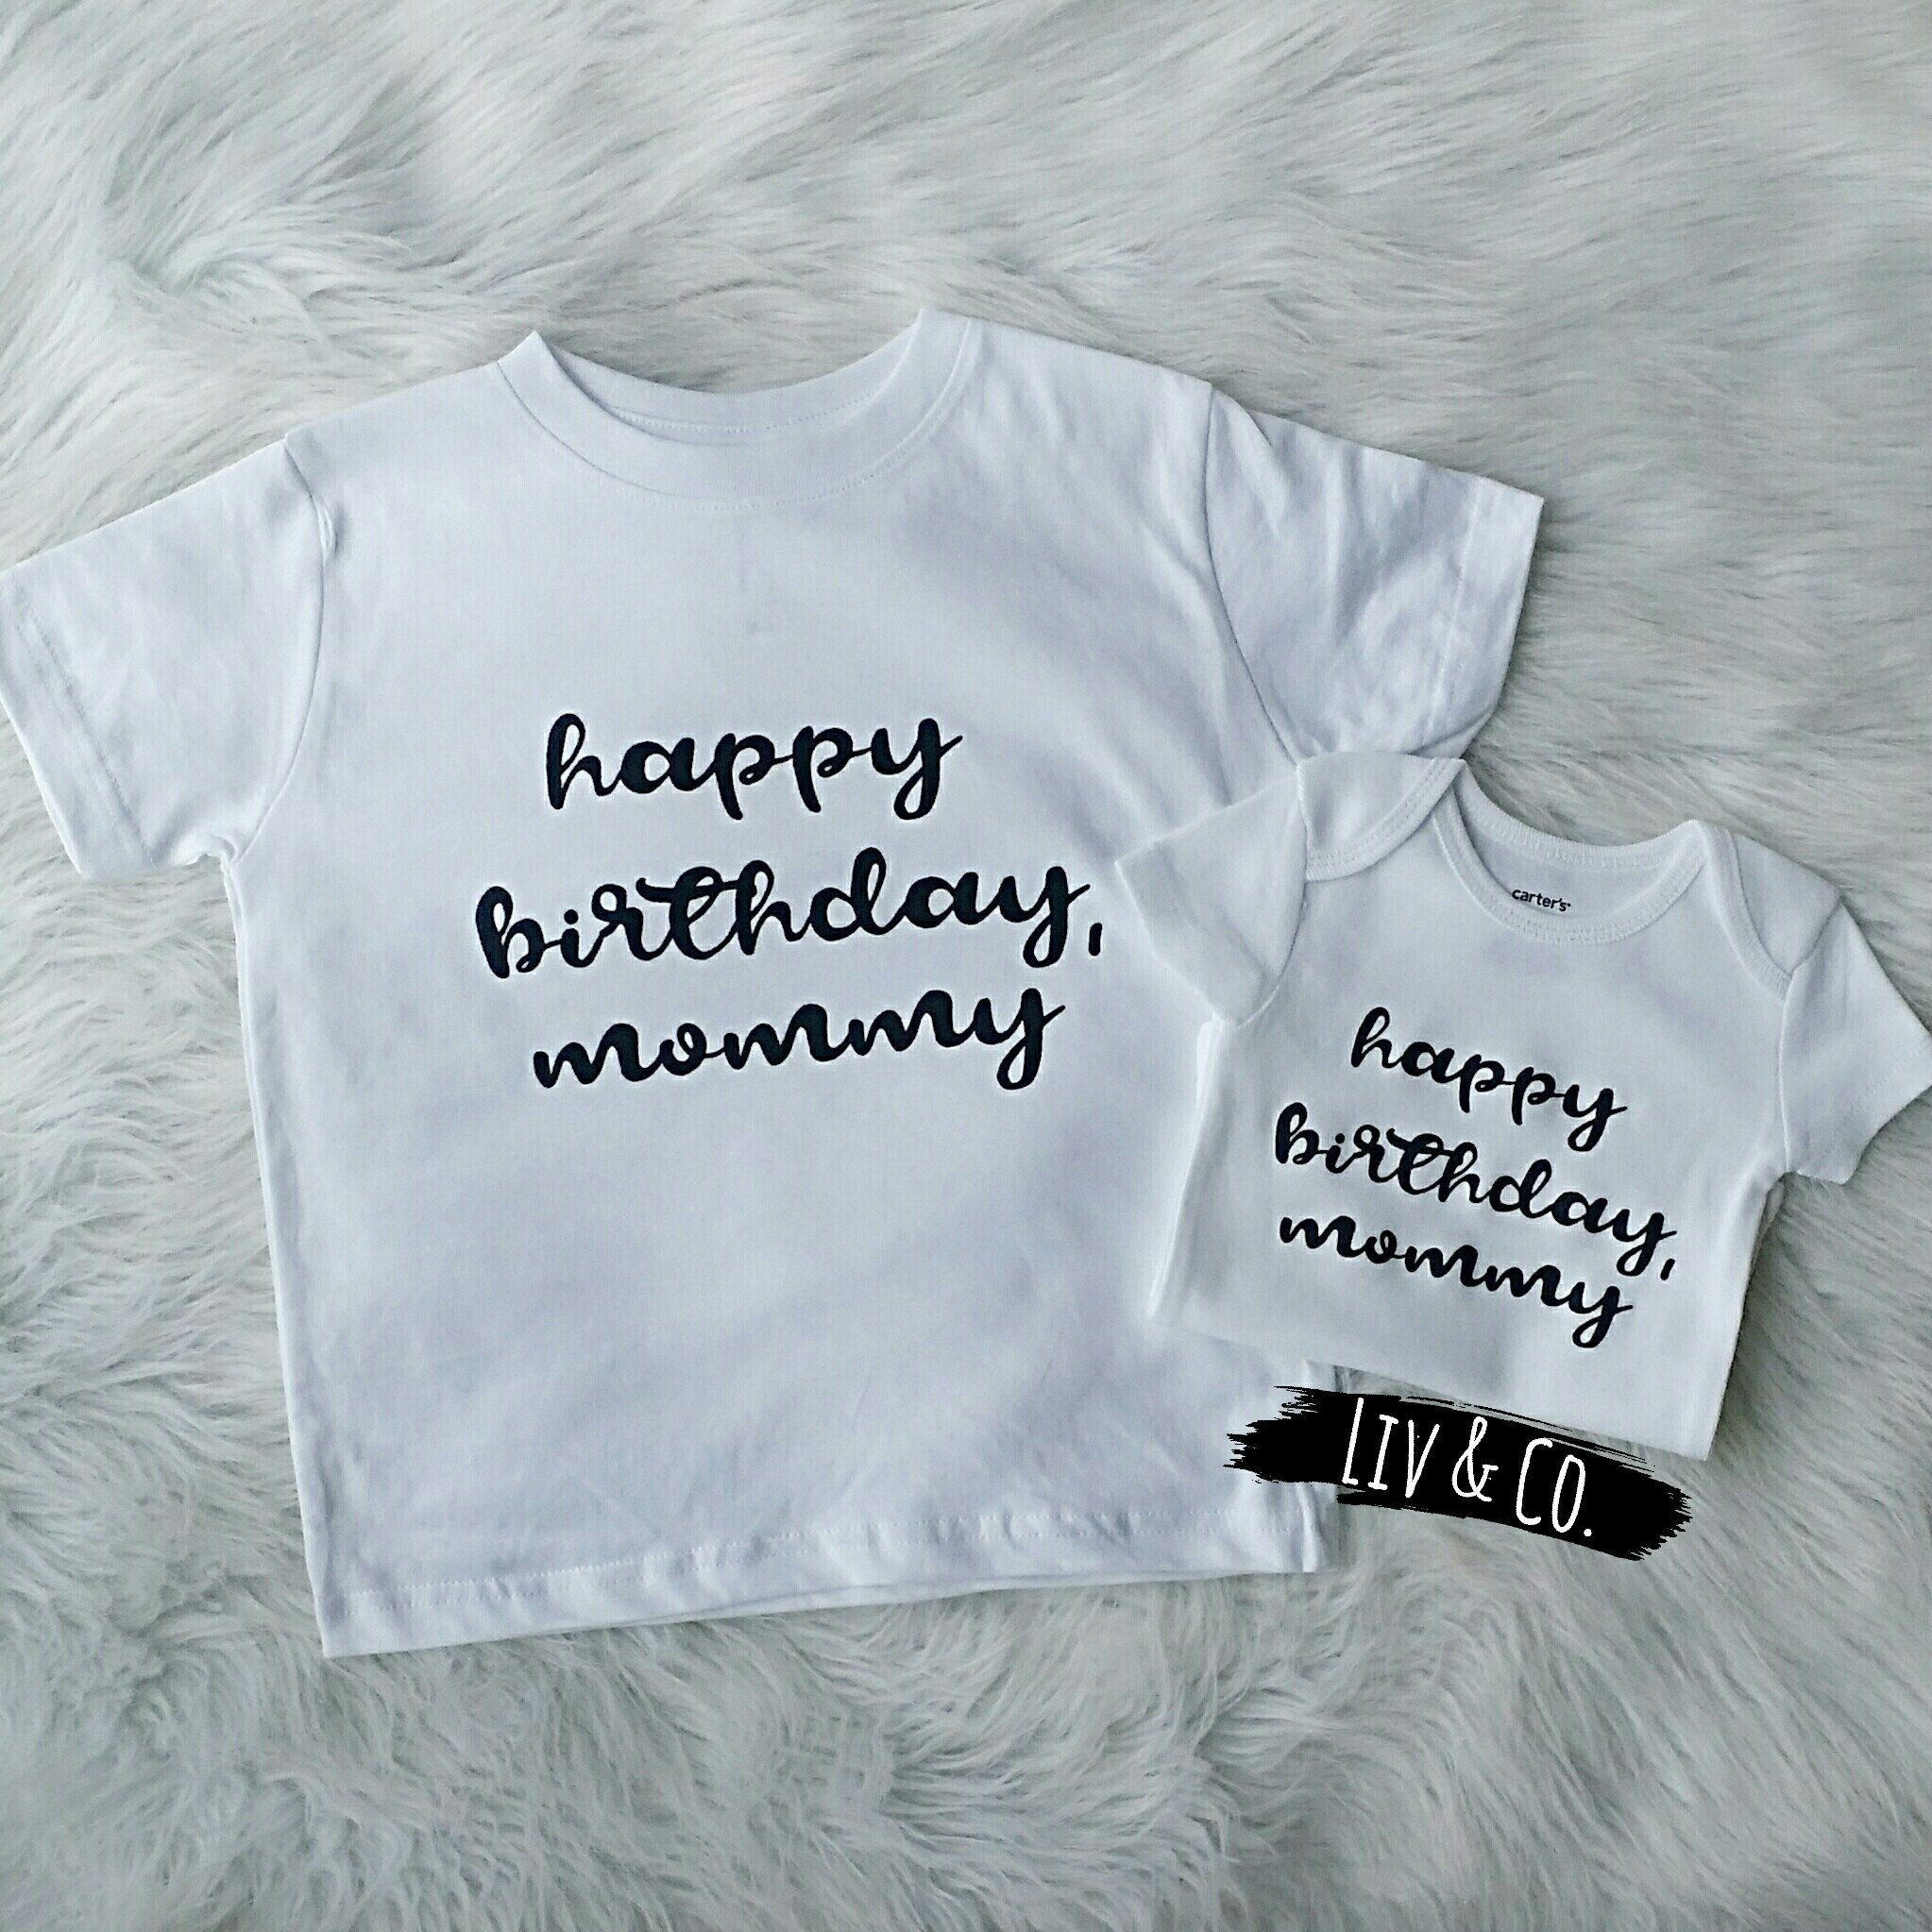 Celebrate Moms Special Day In Our Happy Birthday Mommy Tee Shirt Bodysuit Etsy LivAndCo LivAndCompany